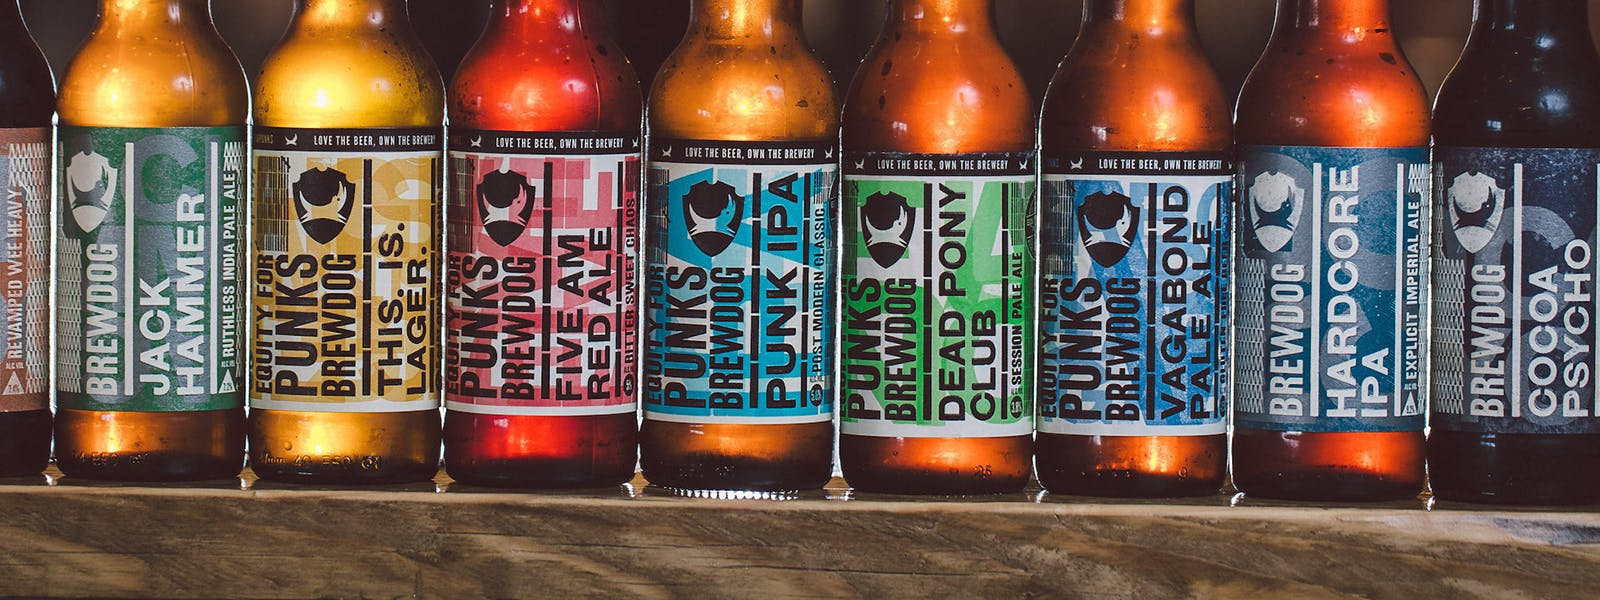 Brewdog bottle labels